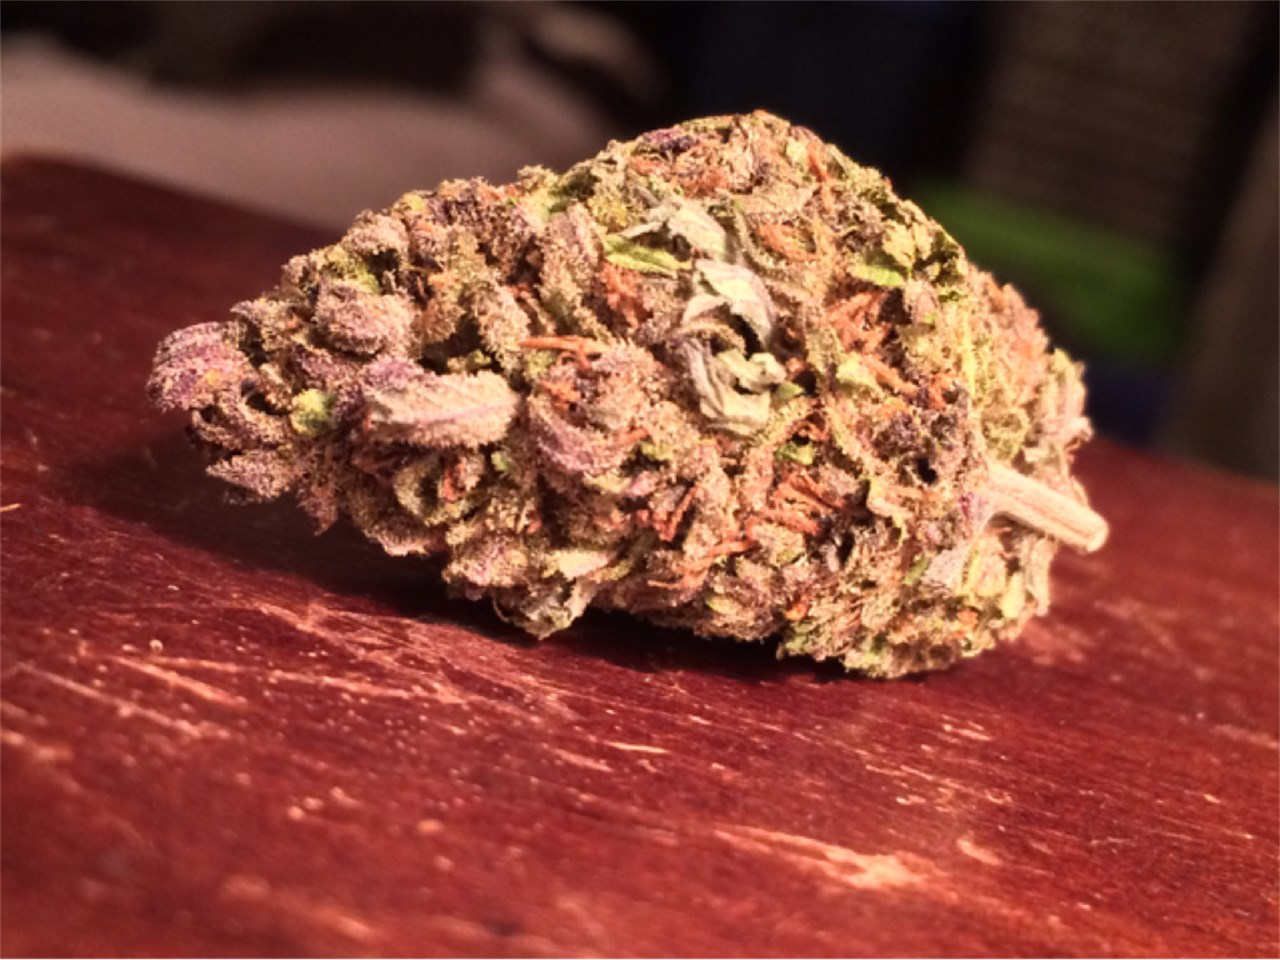 Crunch Berry Kush Aka Crunchberry Kush Marijuana Strain Information Leafly Most often, this applies when an individual has missed some cue to stop, thus creating a useless or bothersome excess. crunch berry kush aka crunchberry kush